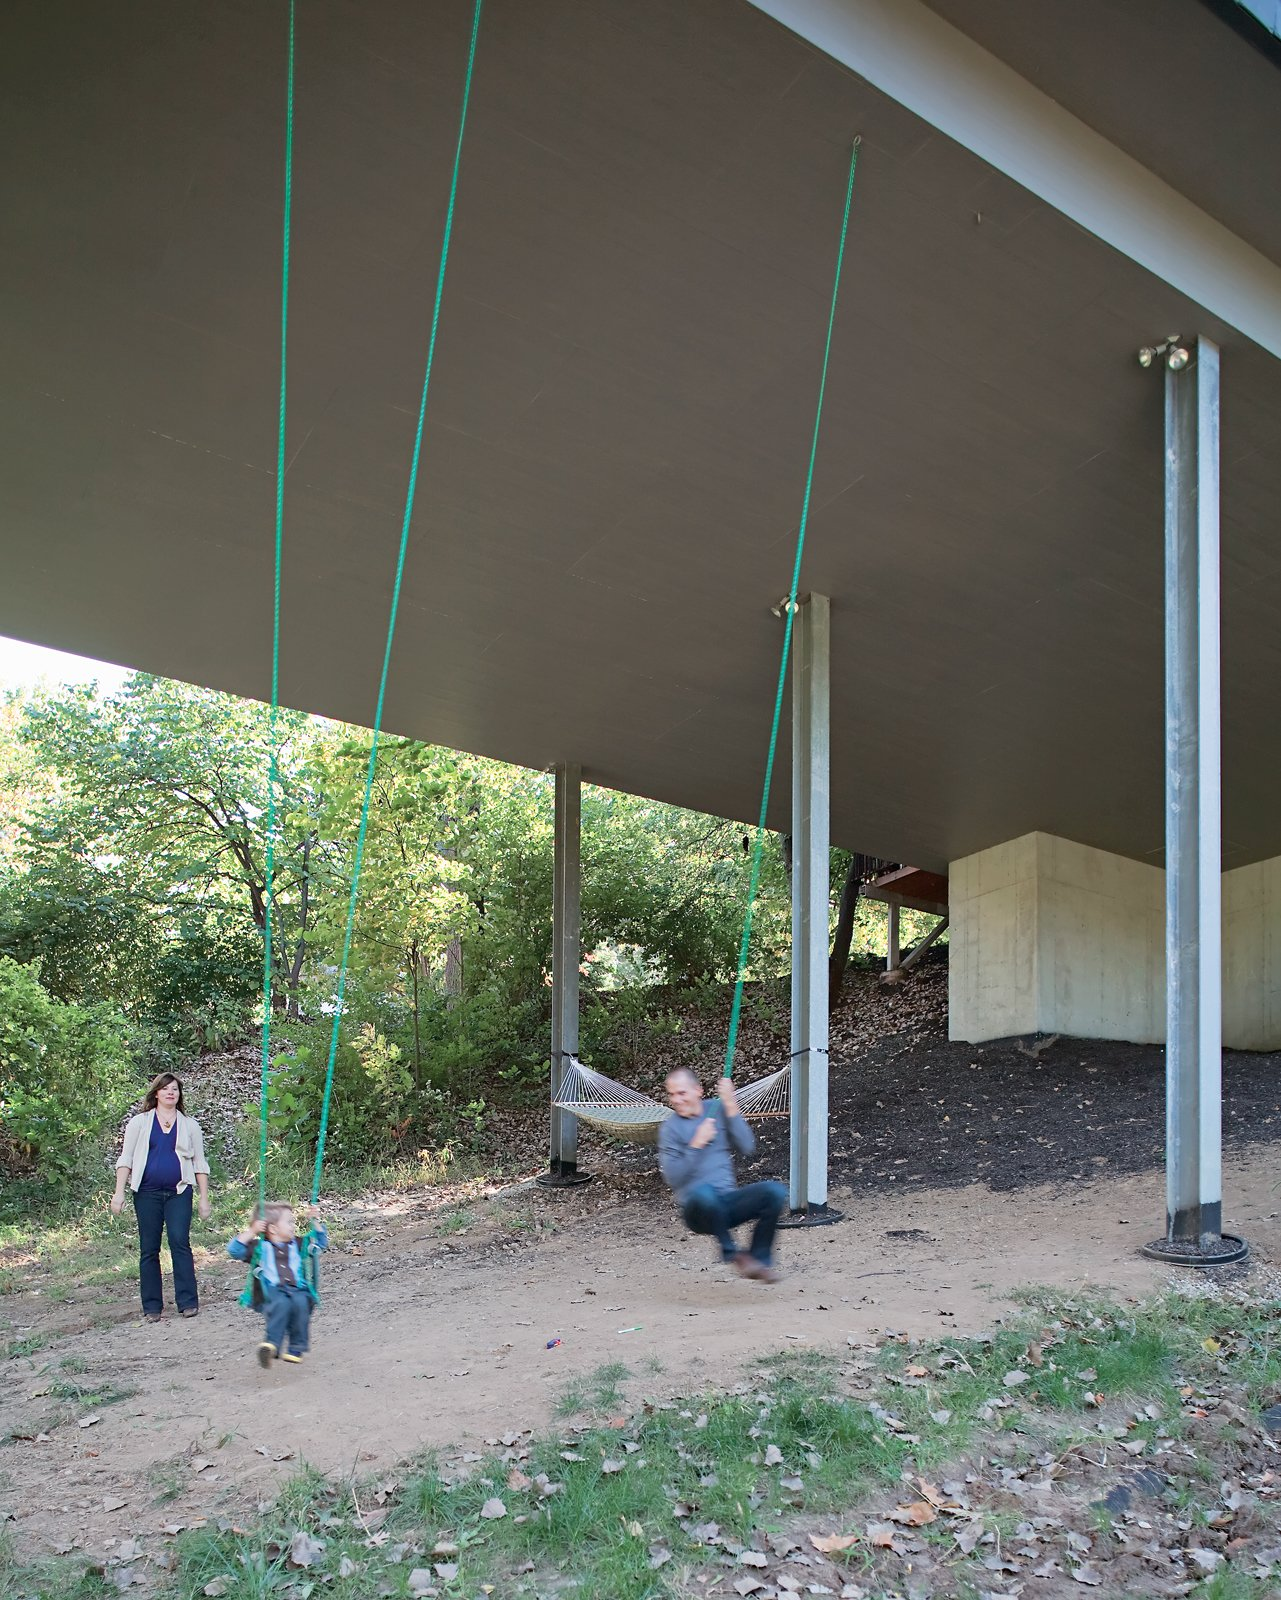 Outdoor Julie, James, and Christian enjoy an unexpected bonus of living in a house on stilts—–a pair of swings suspended from the base of the structure. The family often goes for walks on the property, looking for wildlife and playing in the tepee they built in a secluded space in the woods.  The Sky is the Limit by Ivane Soyombo from A Lot to Love